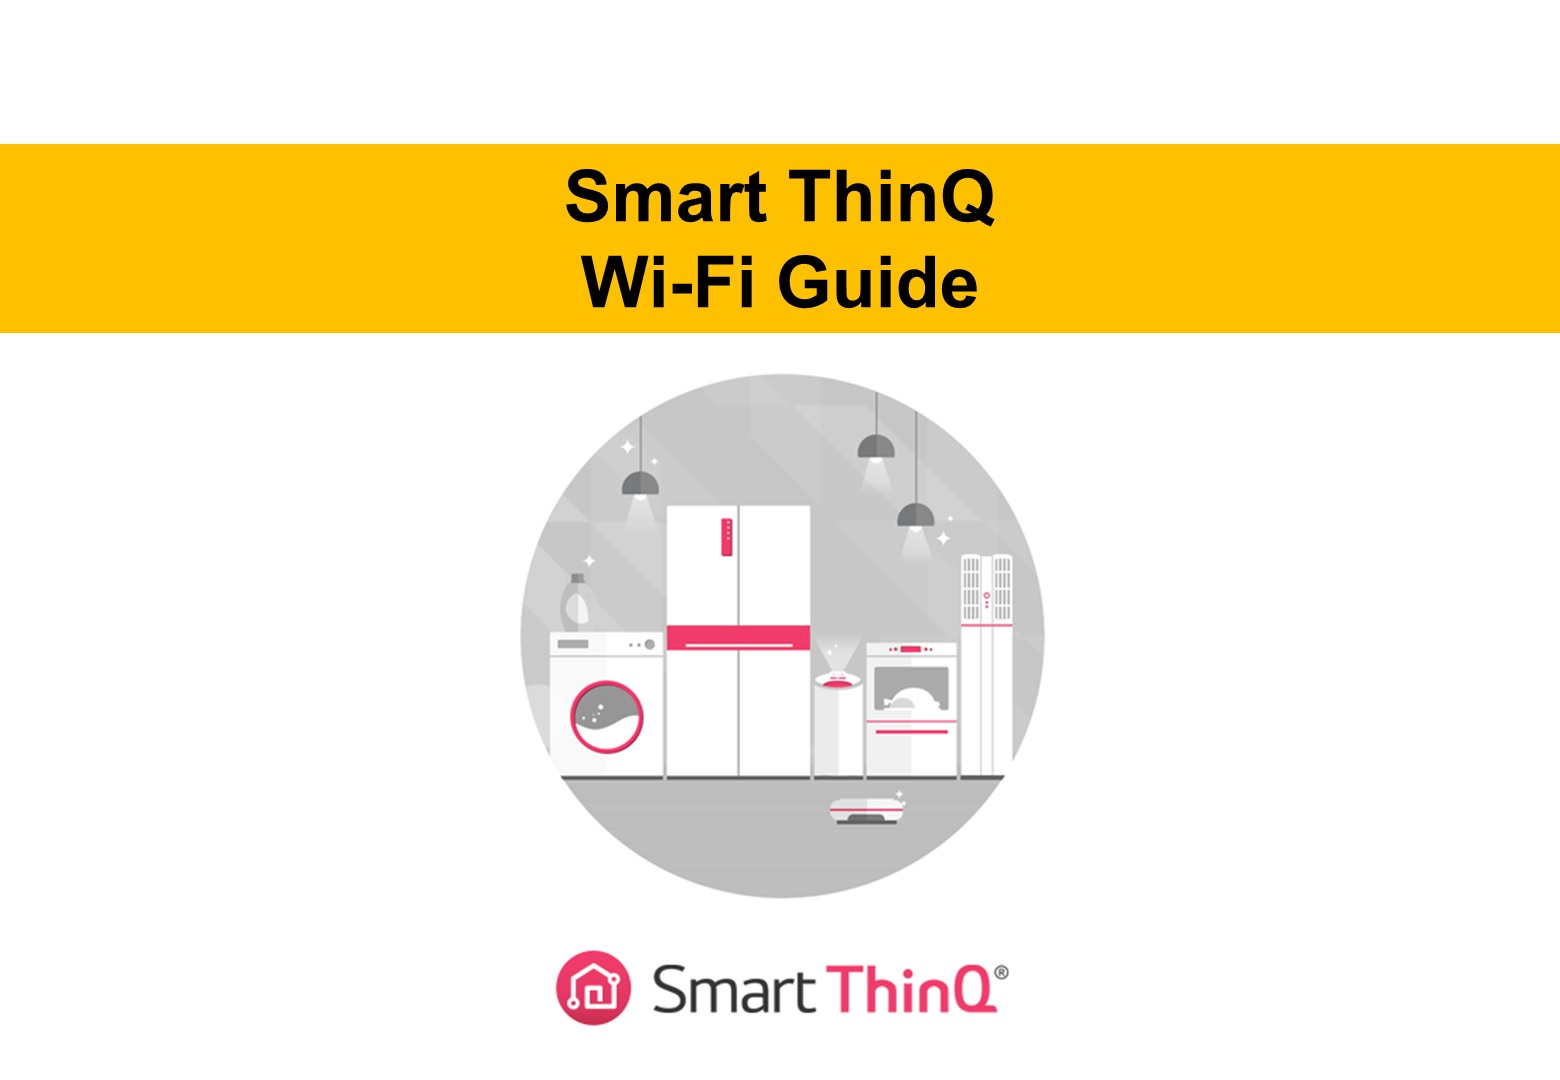 Lg Help Library Smart Thinq App Overview Basic Troubleshooting Download Image Air Compressor Wiring Diagram Pc Android Iphone And